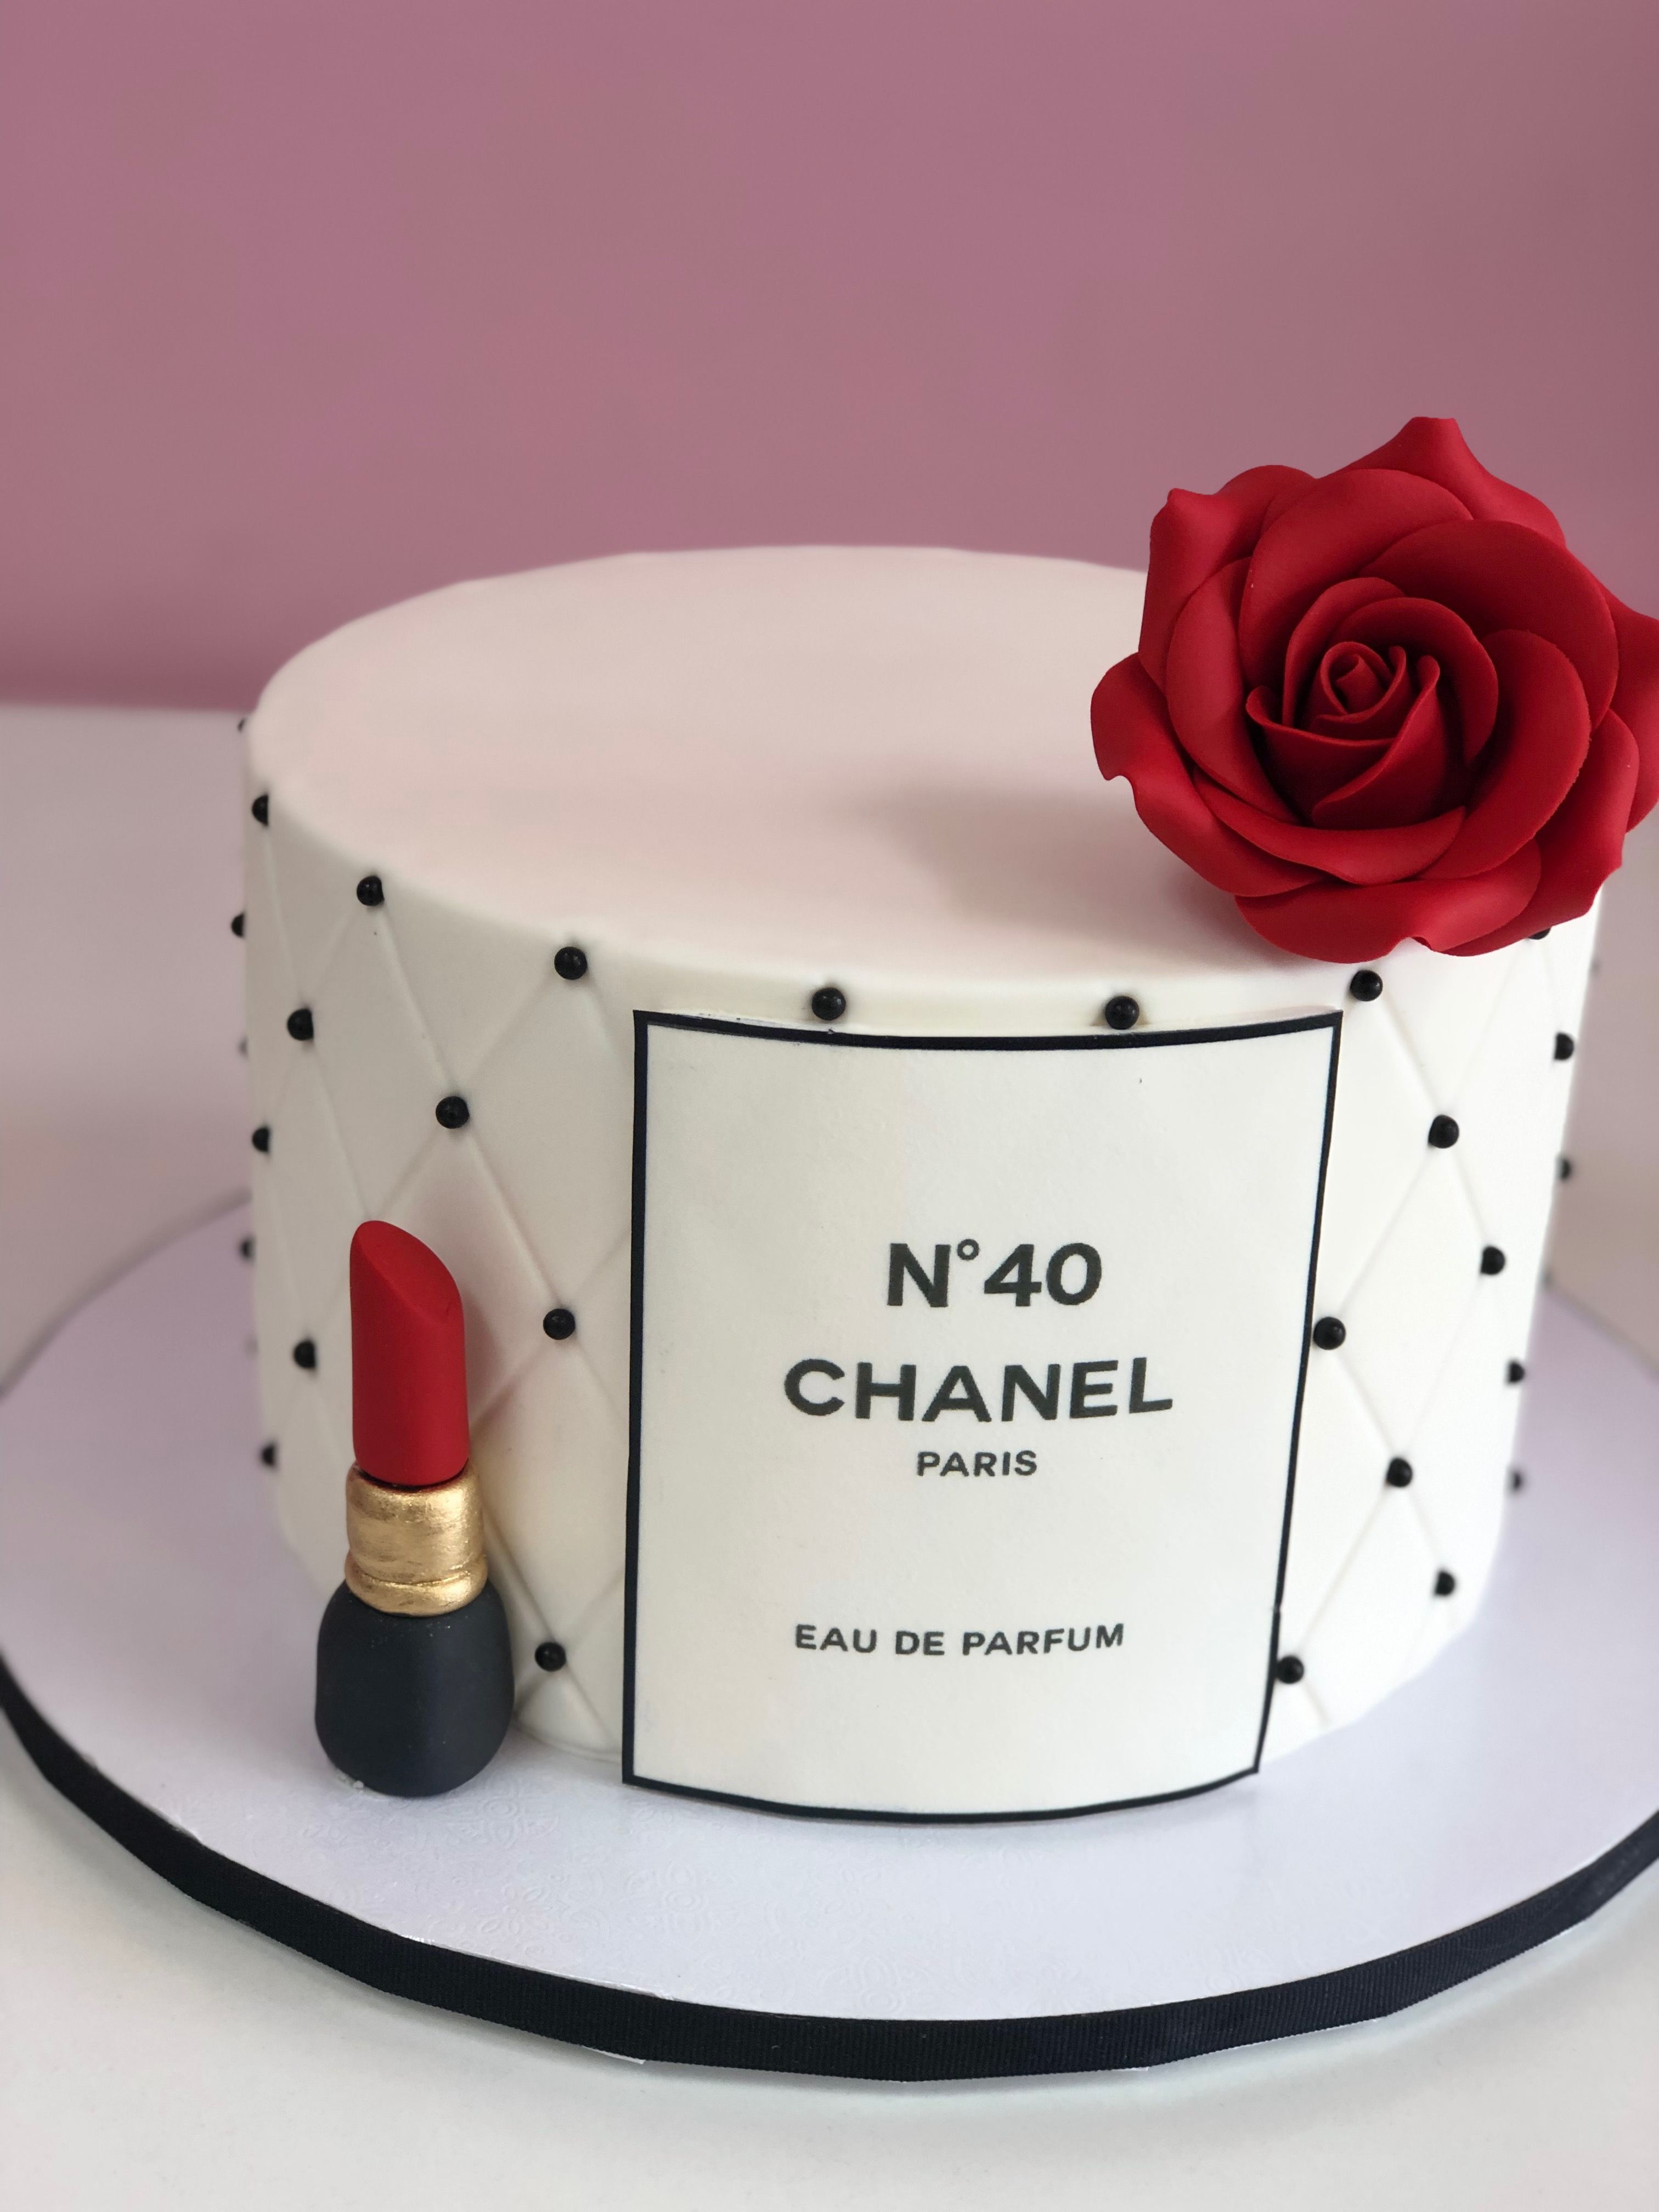 A Girl Can T Get Enough Chanel For Her Birthday Including The Cake Chanel Birthday Cake Chanel Cake Cake Designs Birthday